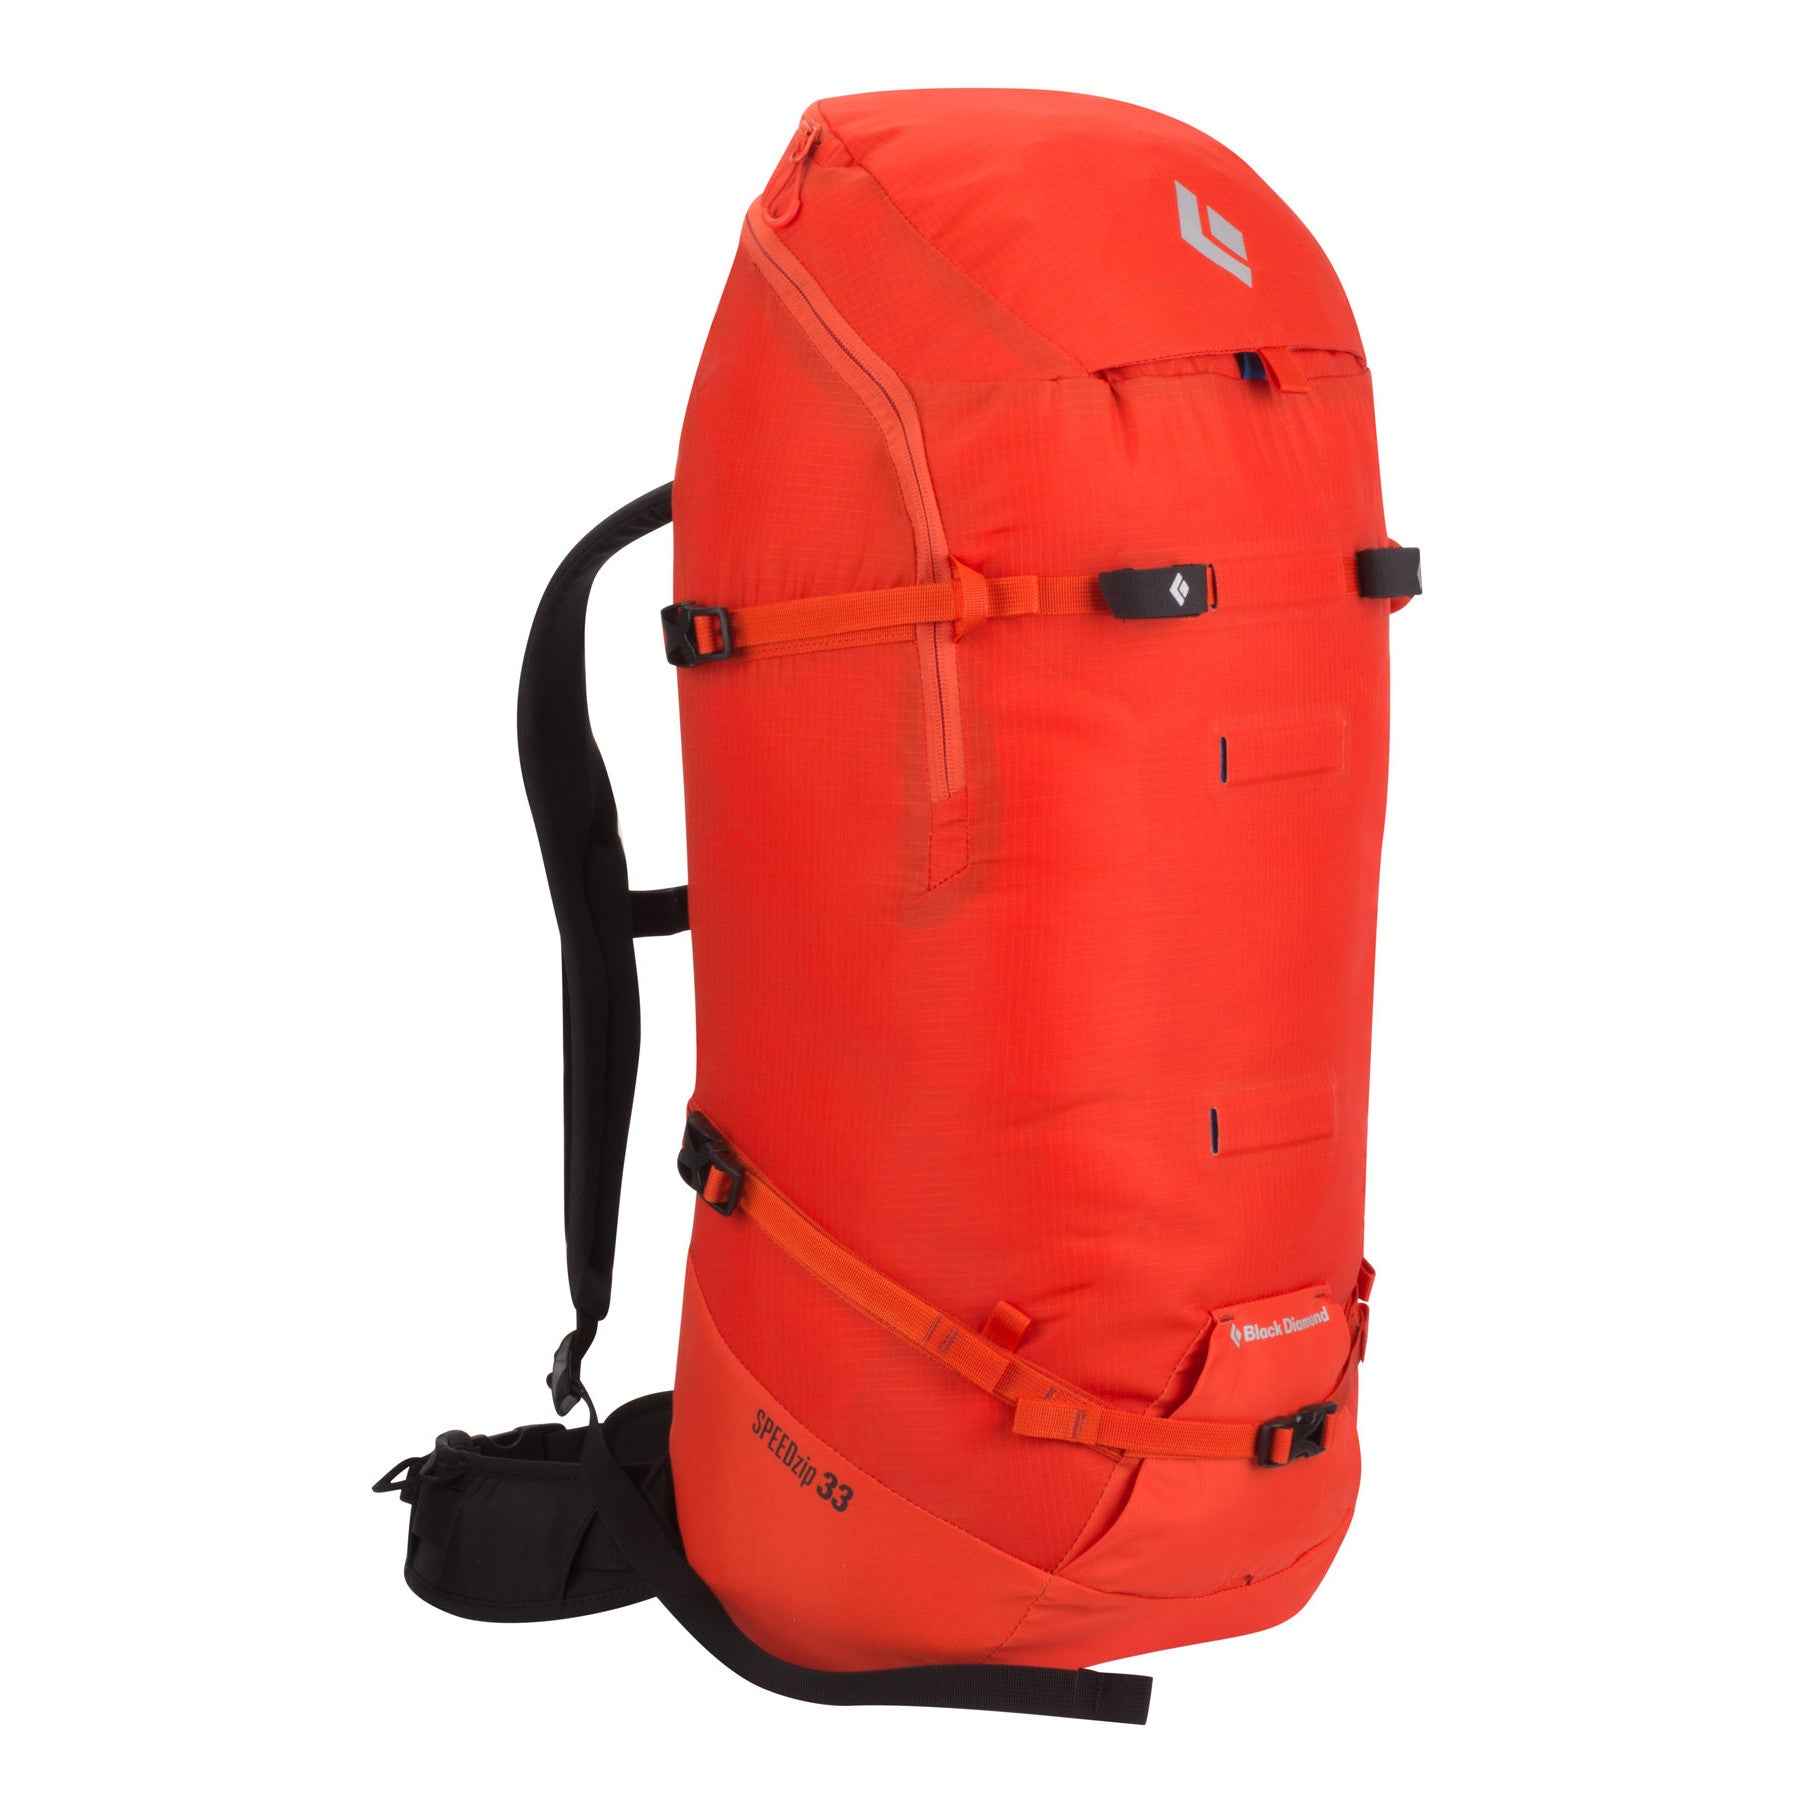 Black Diamond Speed Zip 33 backpack, front/side view in red colour